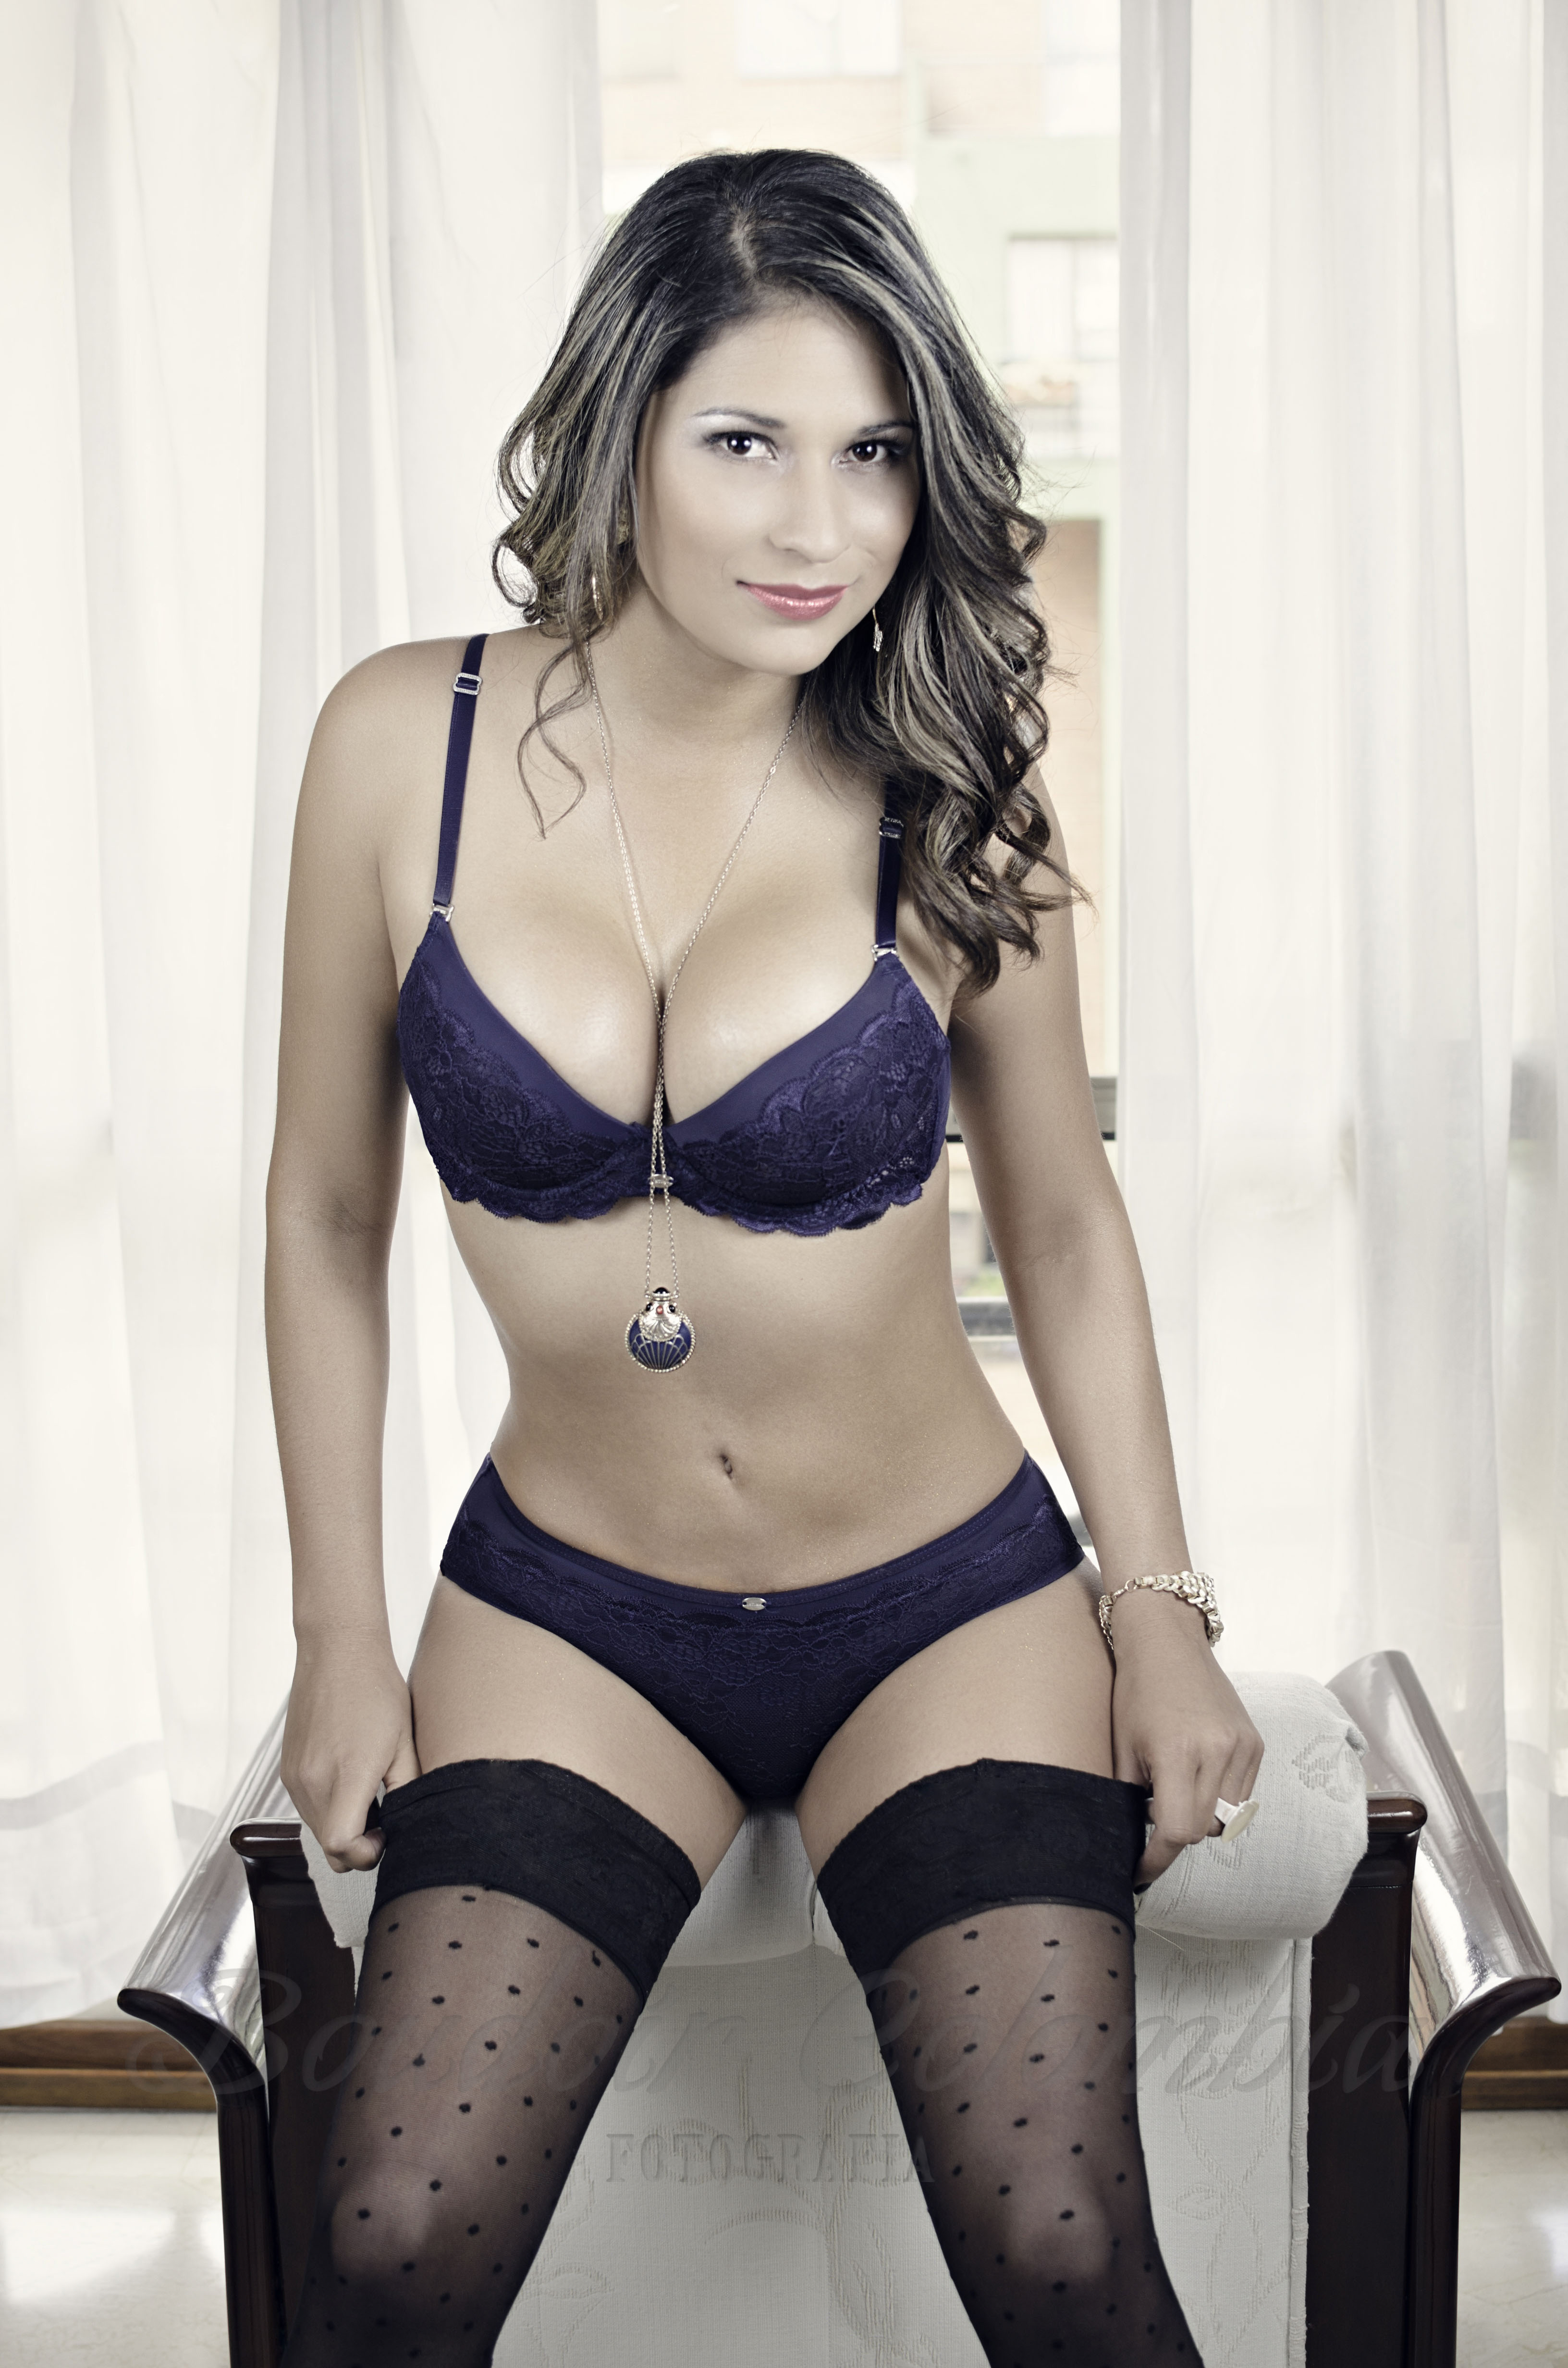 http://boudoircolombia.co/wp-content/uploads/2014/08/Boudoir-Colombia-Maira001-Color.jpg-image